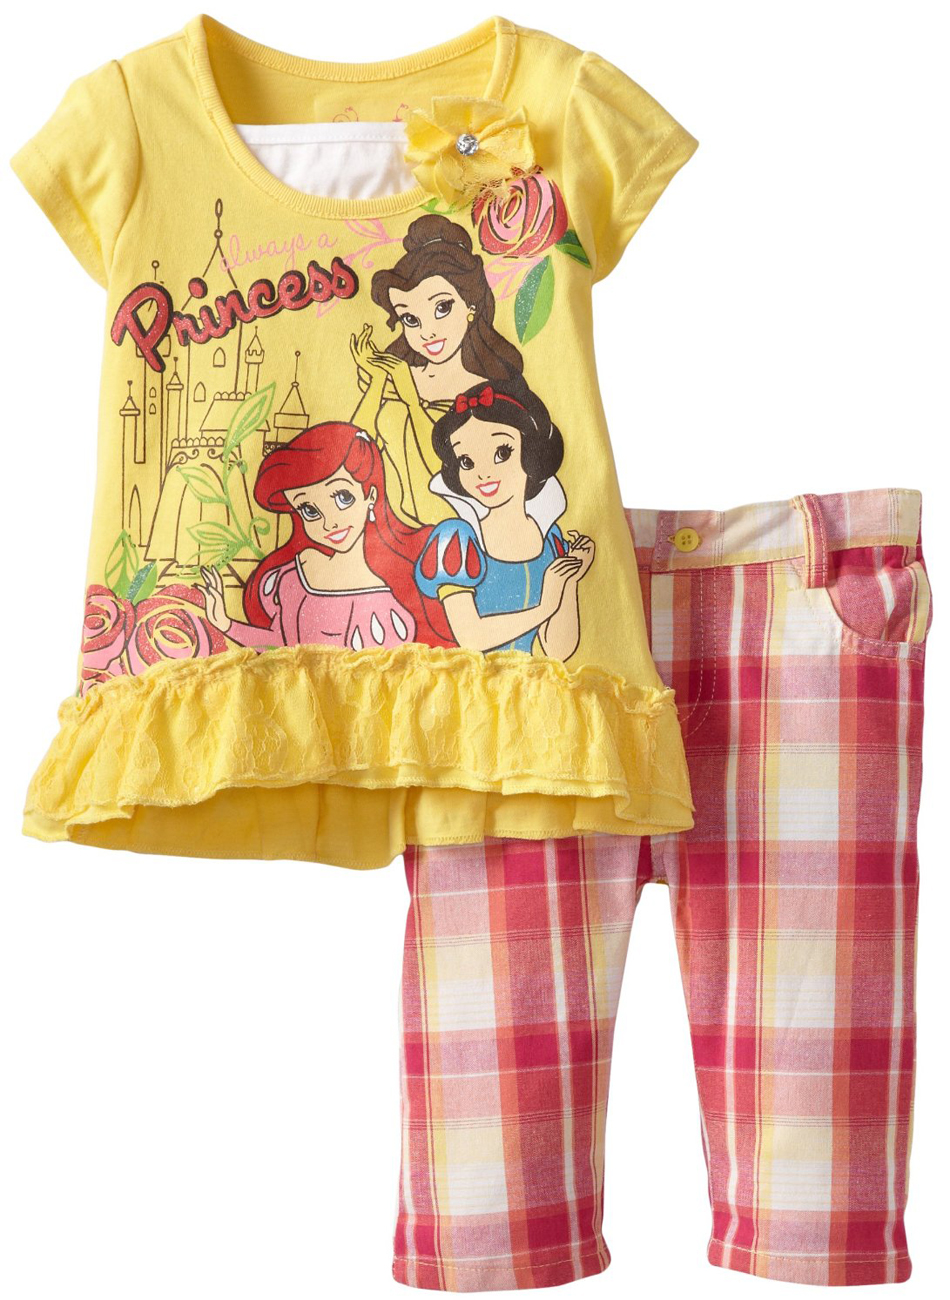 Disney Princess Little Girls' 2 Piece Yellow Top Pink Plaid Capri Pants Set at Sears.com